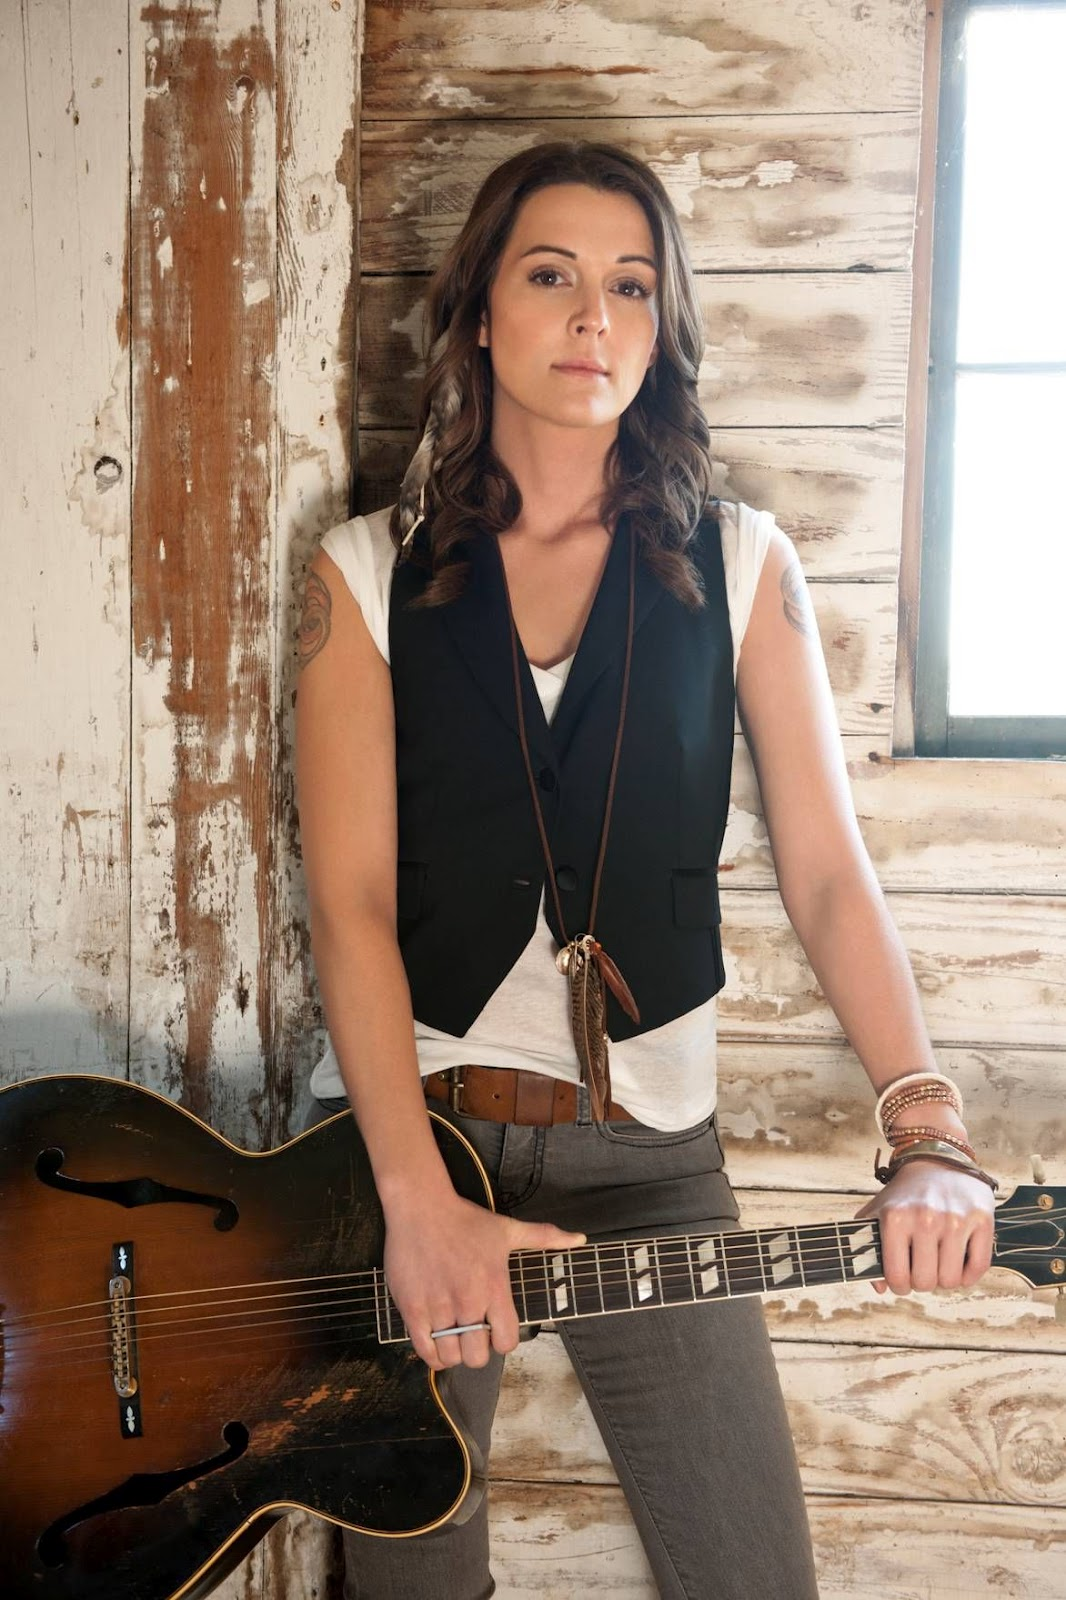 Brandi Carlile interviews with Seattle Gay News, performs free tonight